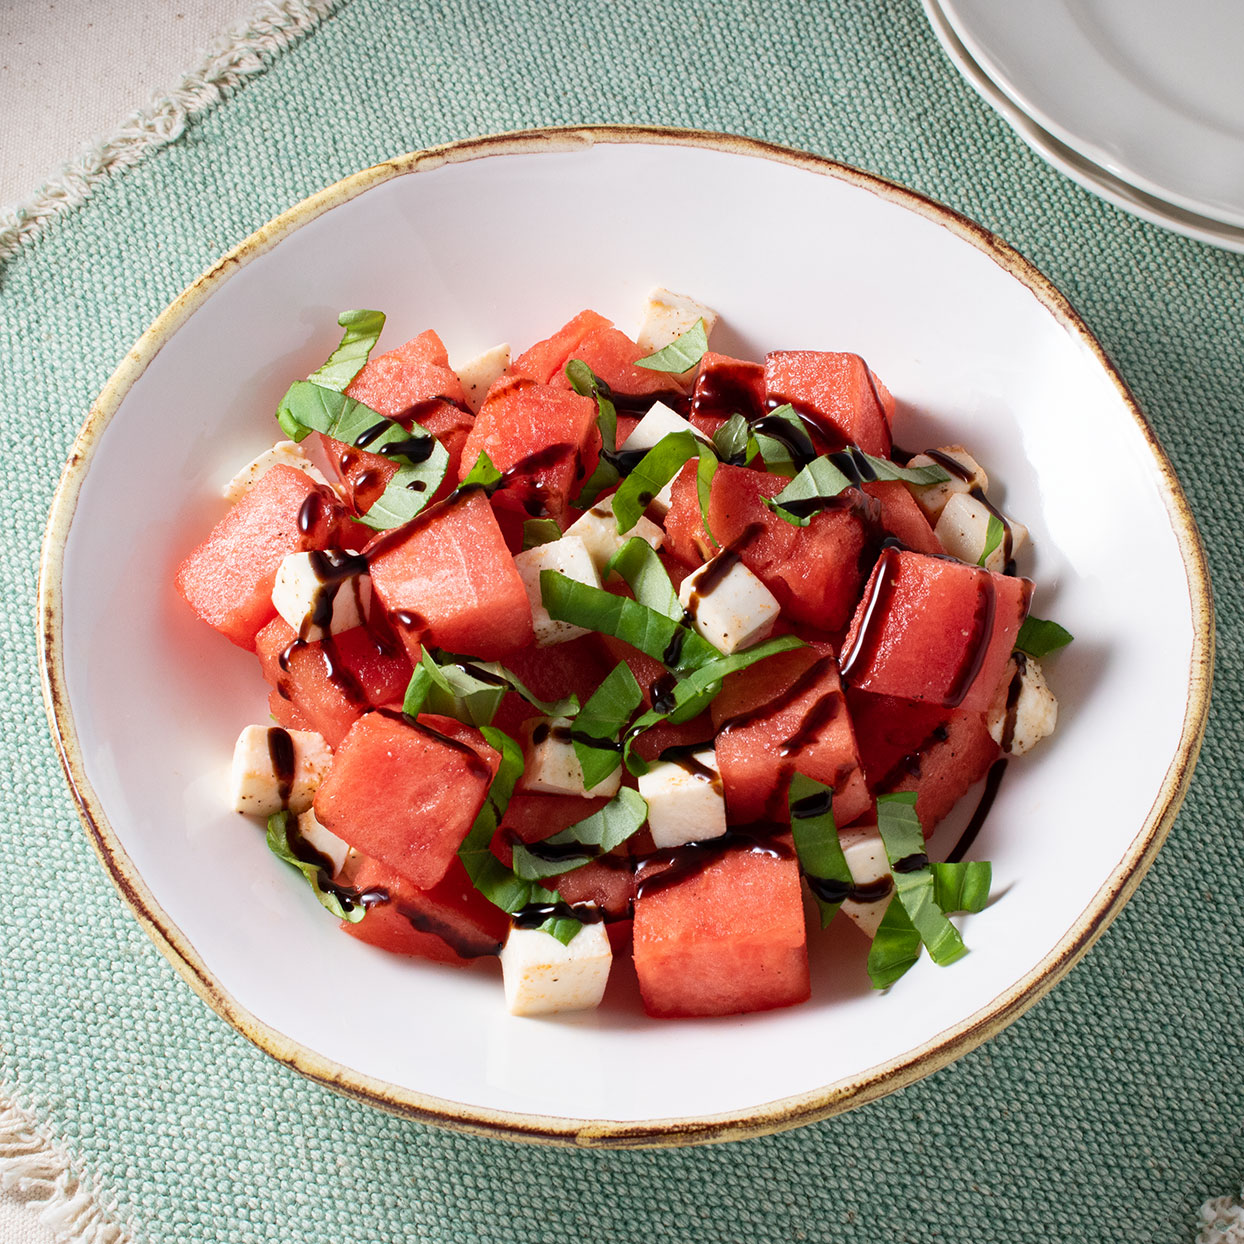 This refreshing twist on the classic caprese salad replaces tomatoes with sweet, juicy watermelon. Basil and balsamic vinegar push this easy summer salad to the savory side, but if you want some sweeter notes, opt for balsamic glaze. An optional drizzle with extra-virgin olive oil at the end helps marry the flavors. Source: EatingWell.com, July 2020